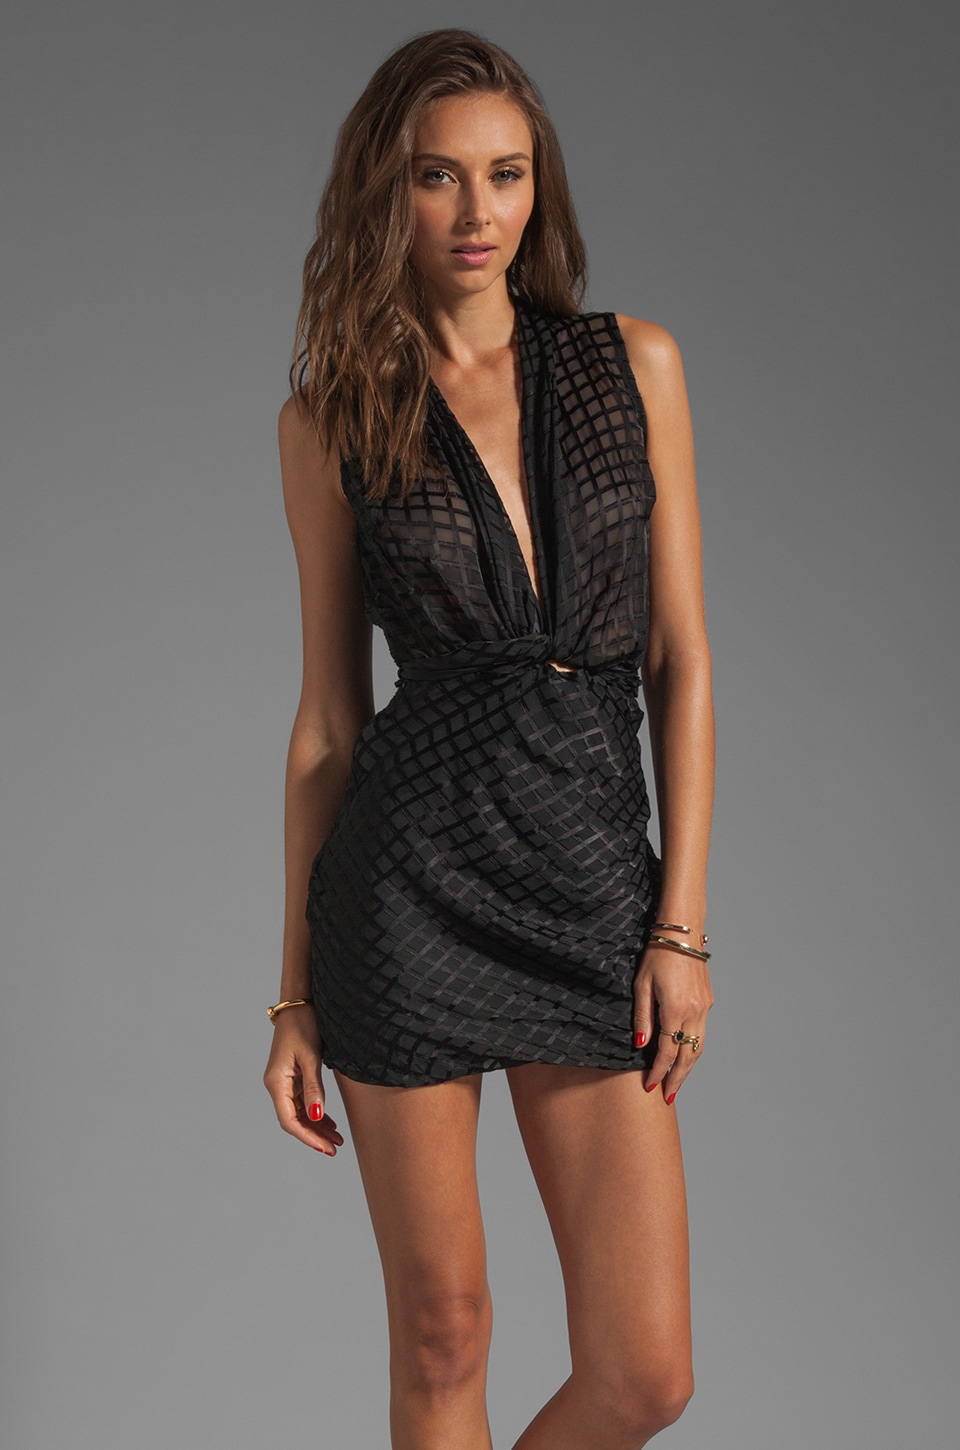 Maurie & Eve Onyx Wrap Mini Dress in Black Check